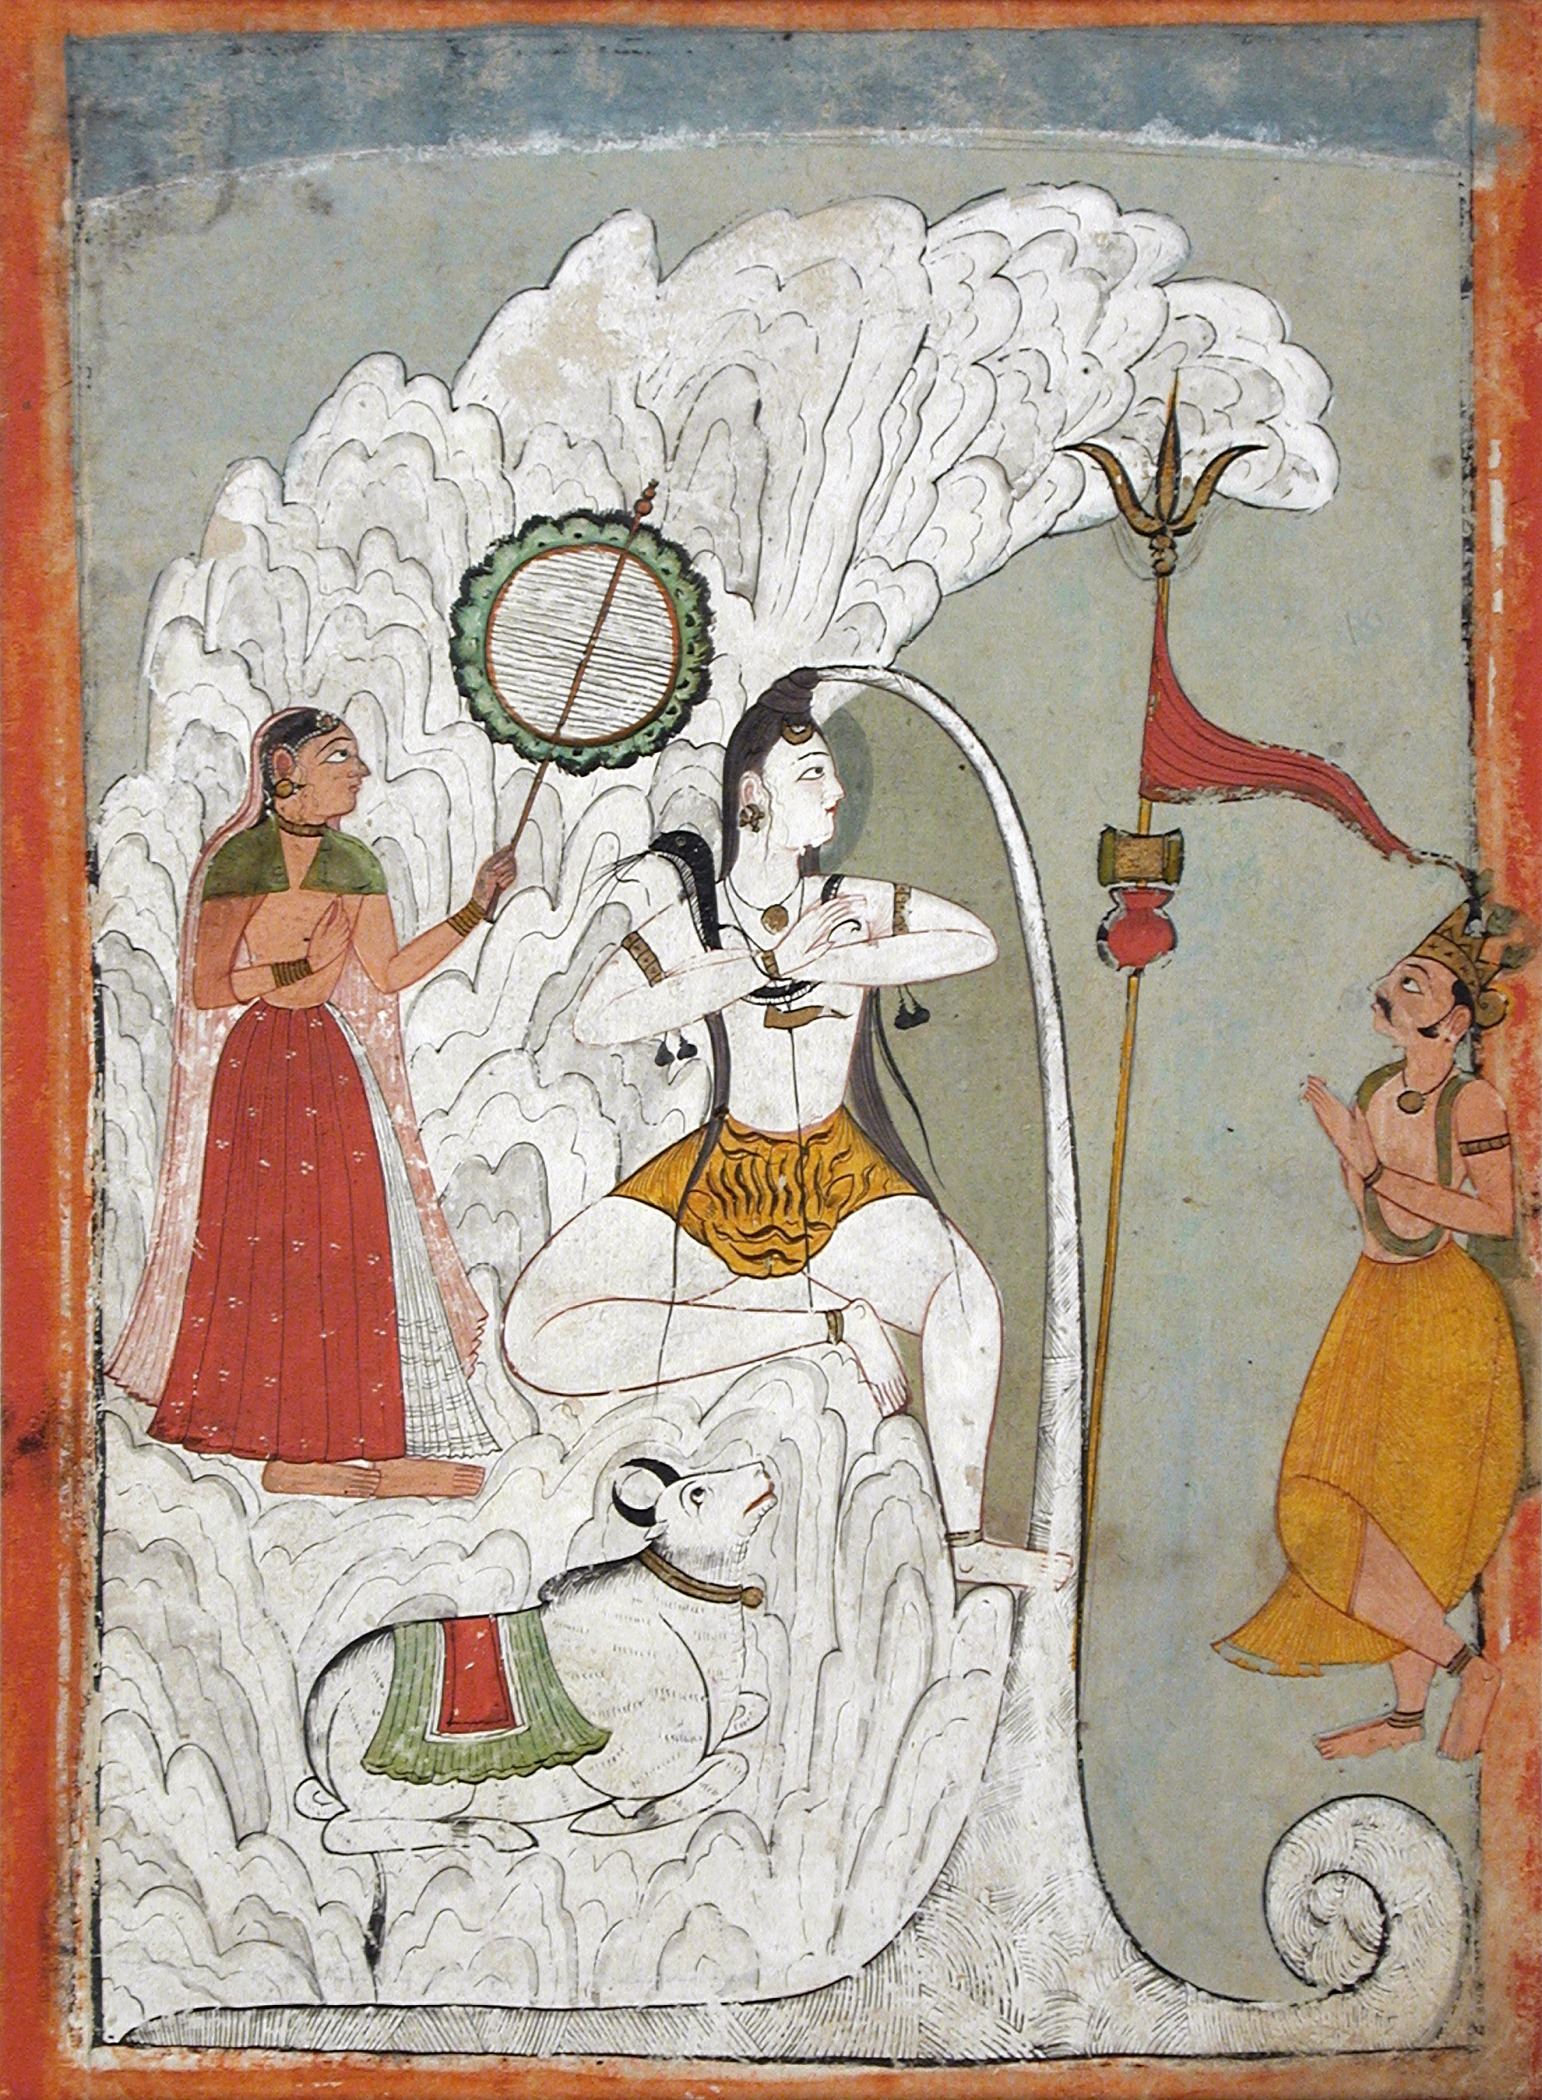 Shiva_Bearing_the_Descent_of_the_Ganges_River,_folio_from_a_Hindi_manuscript_by_the_saint_Narayan_LACMA_M.86.345.6.jpg